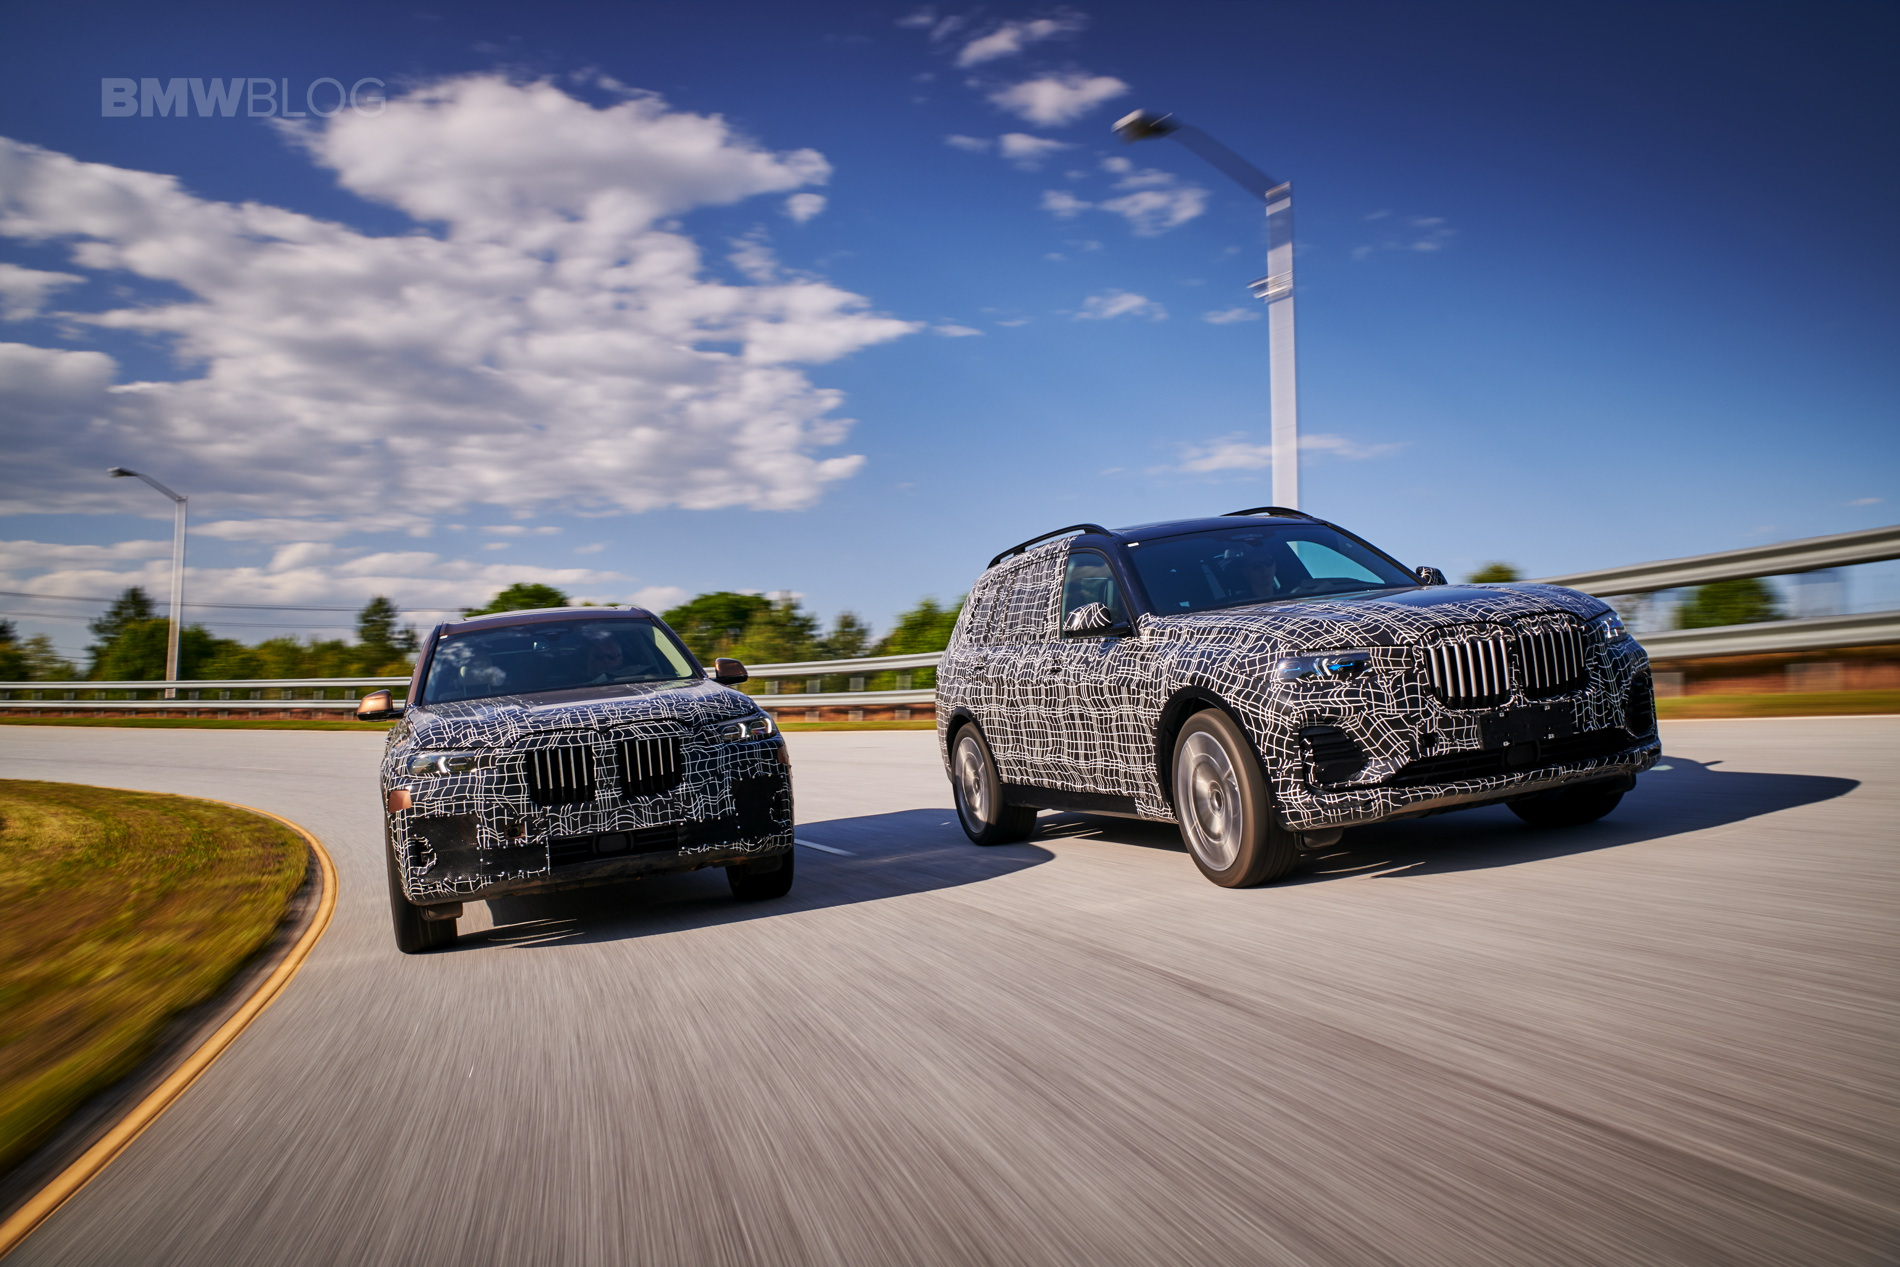 FIRST DRIVE: BMW X7 - The 7 Series Of The X Family